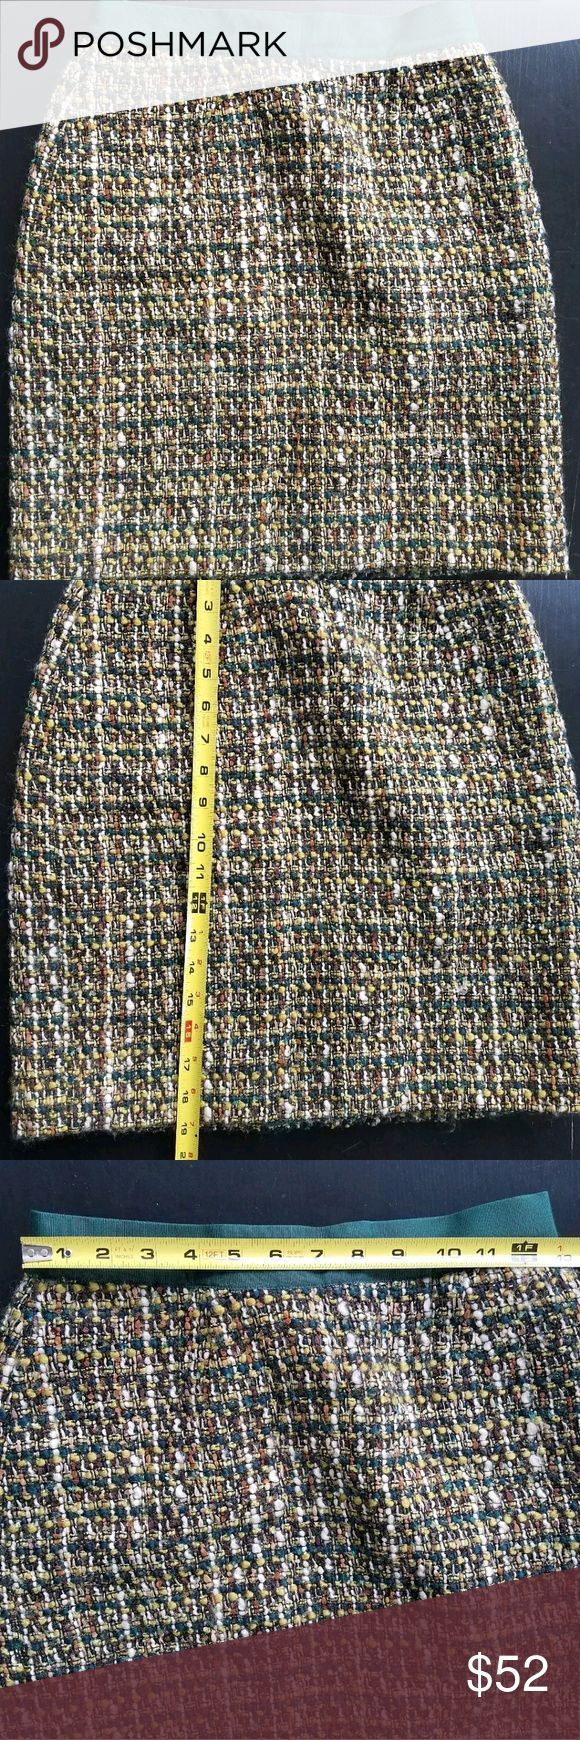 Kate Spade Skirt the Rules tweed skirt Great condition.  See pics for measurements. kate spade Skirts Mini